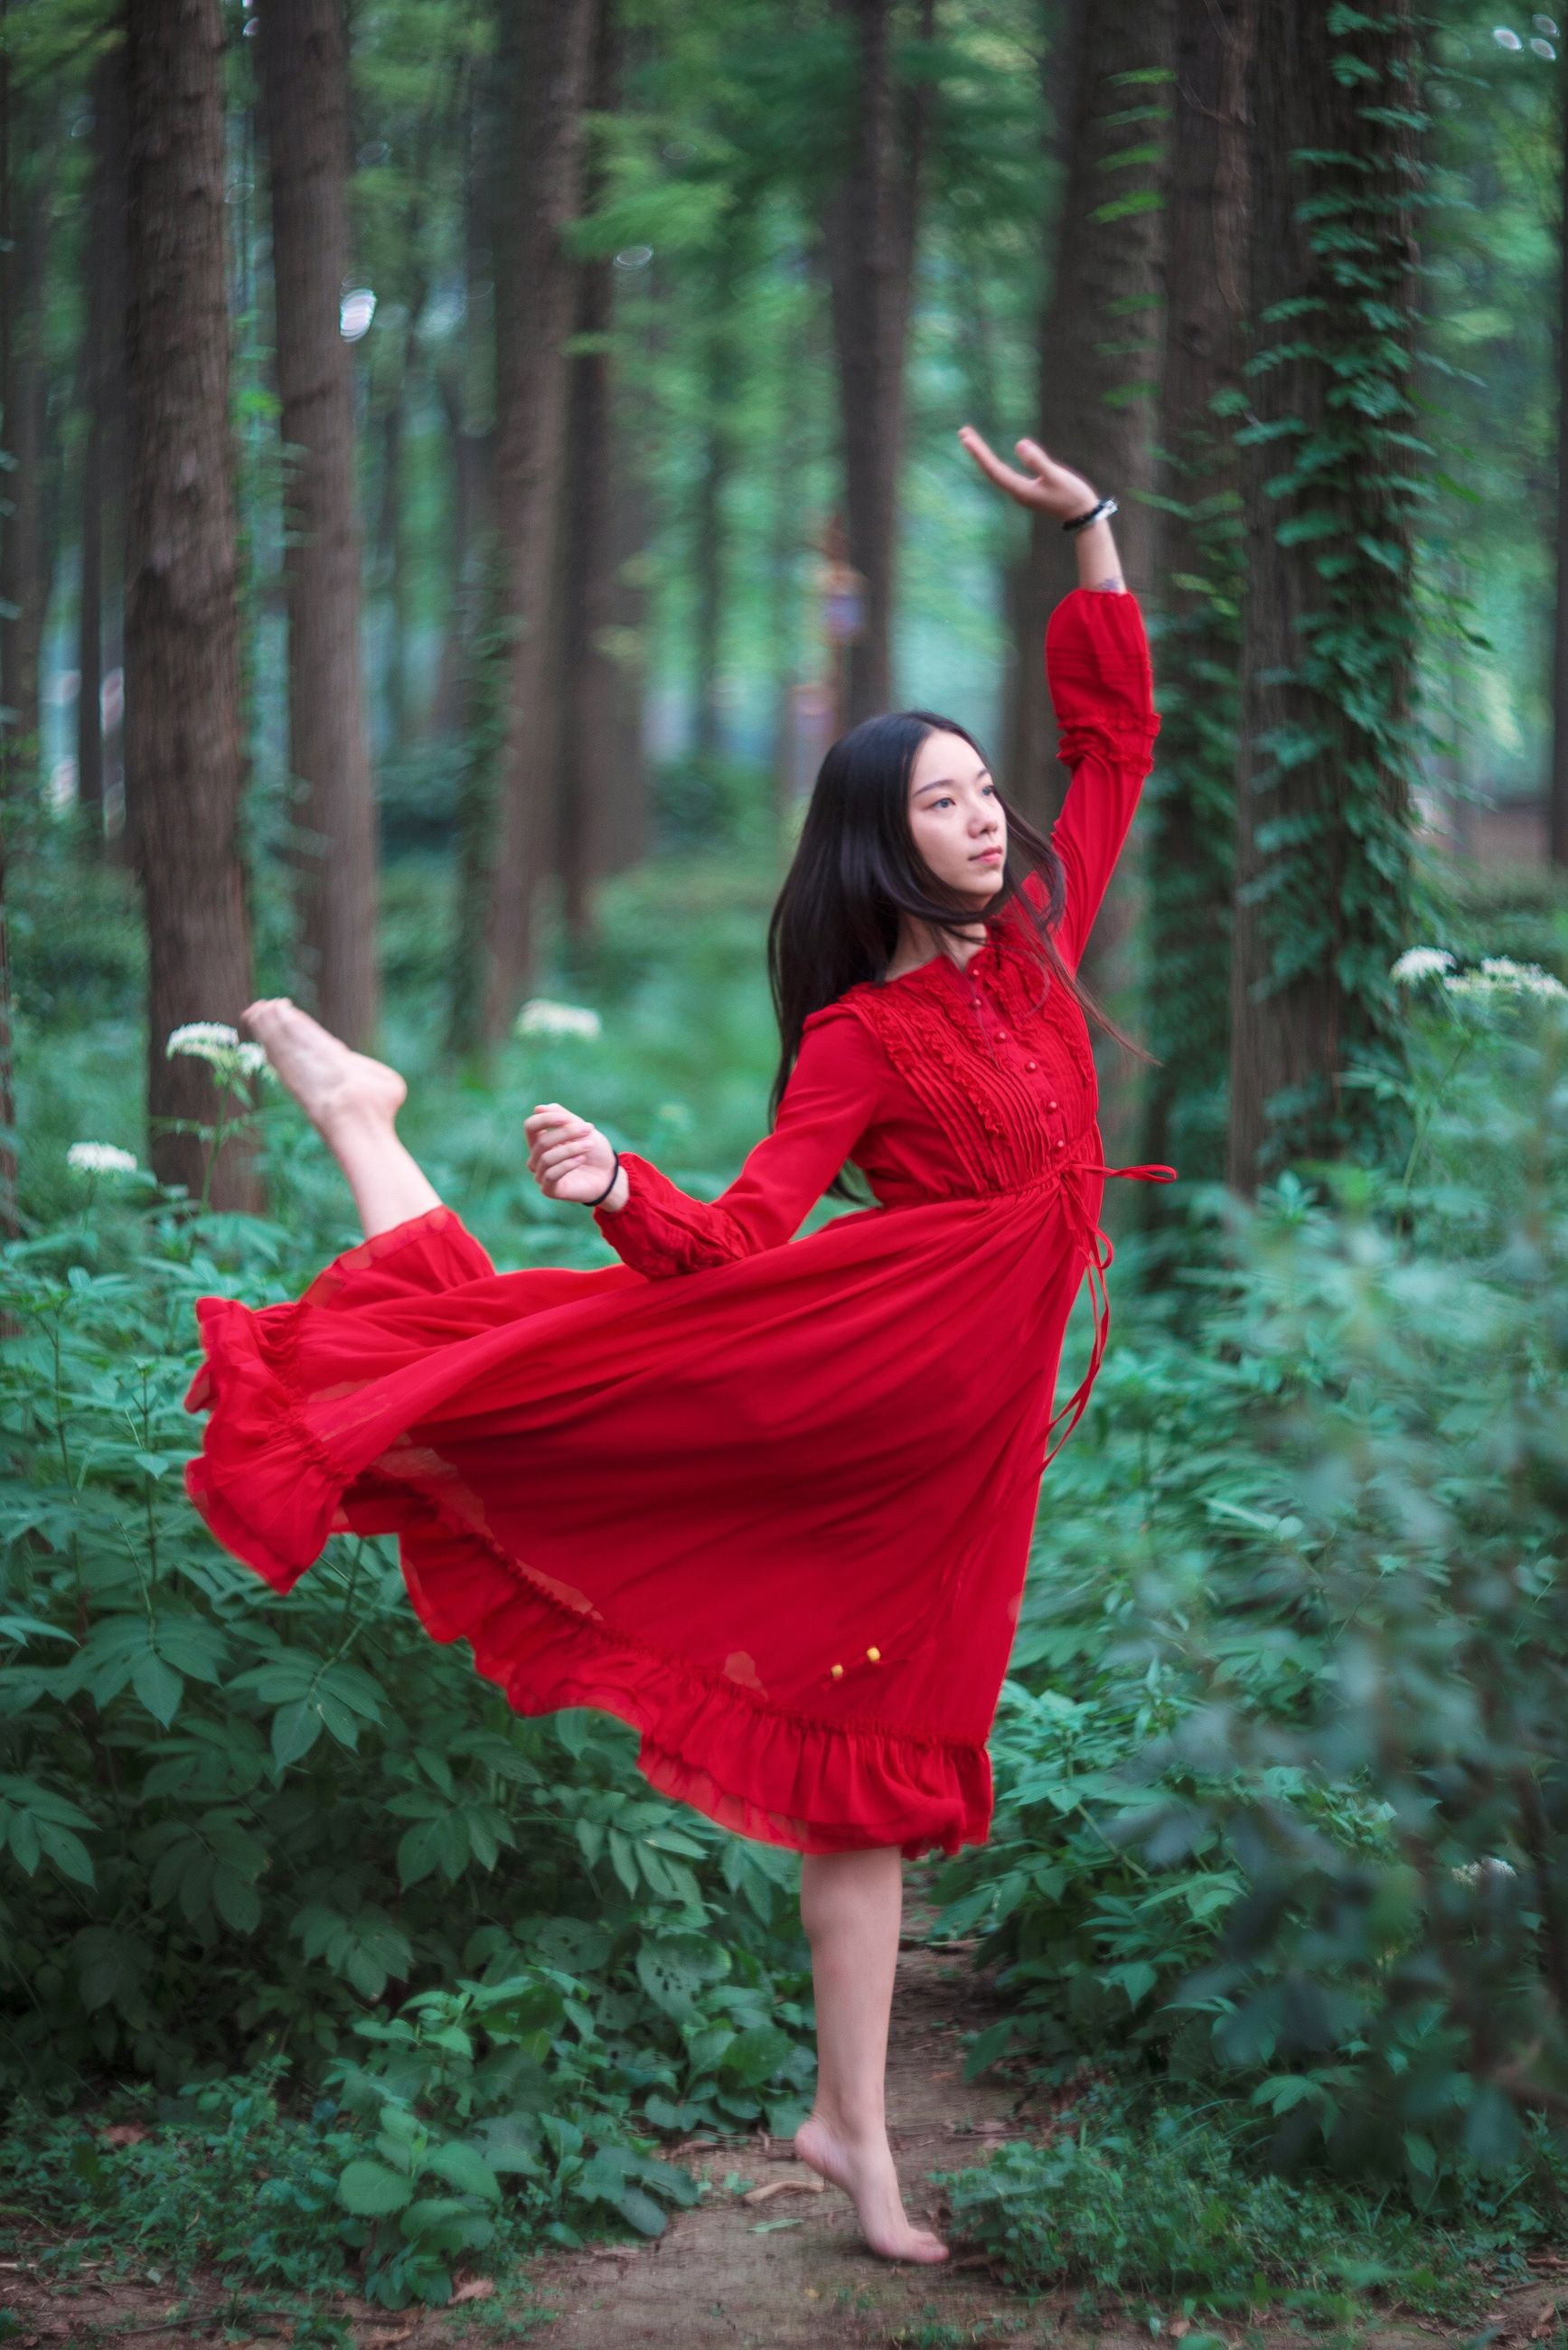 red, lifestyles, full length, standing, casual clothing, tree, front view, leisure activity, young women, young adult, dress, focus on foreground, tree trunk, forest, three quarter length, portrait, looking at camera, person